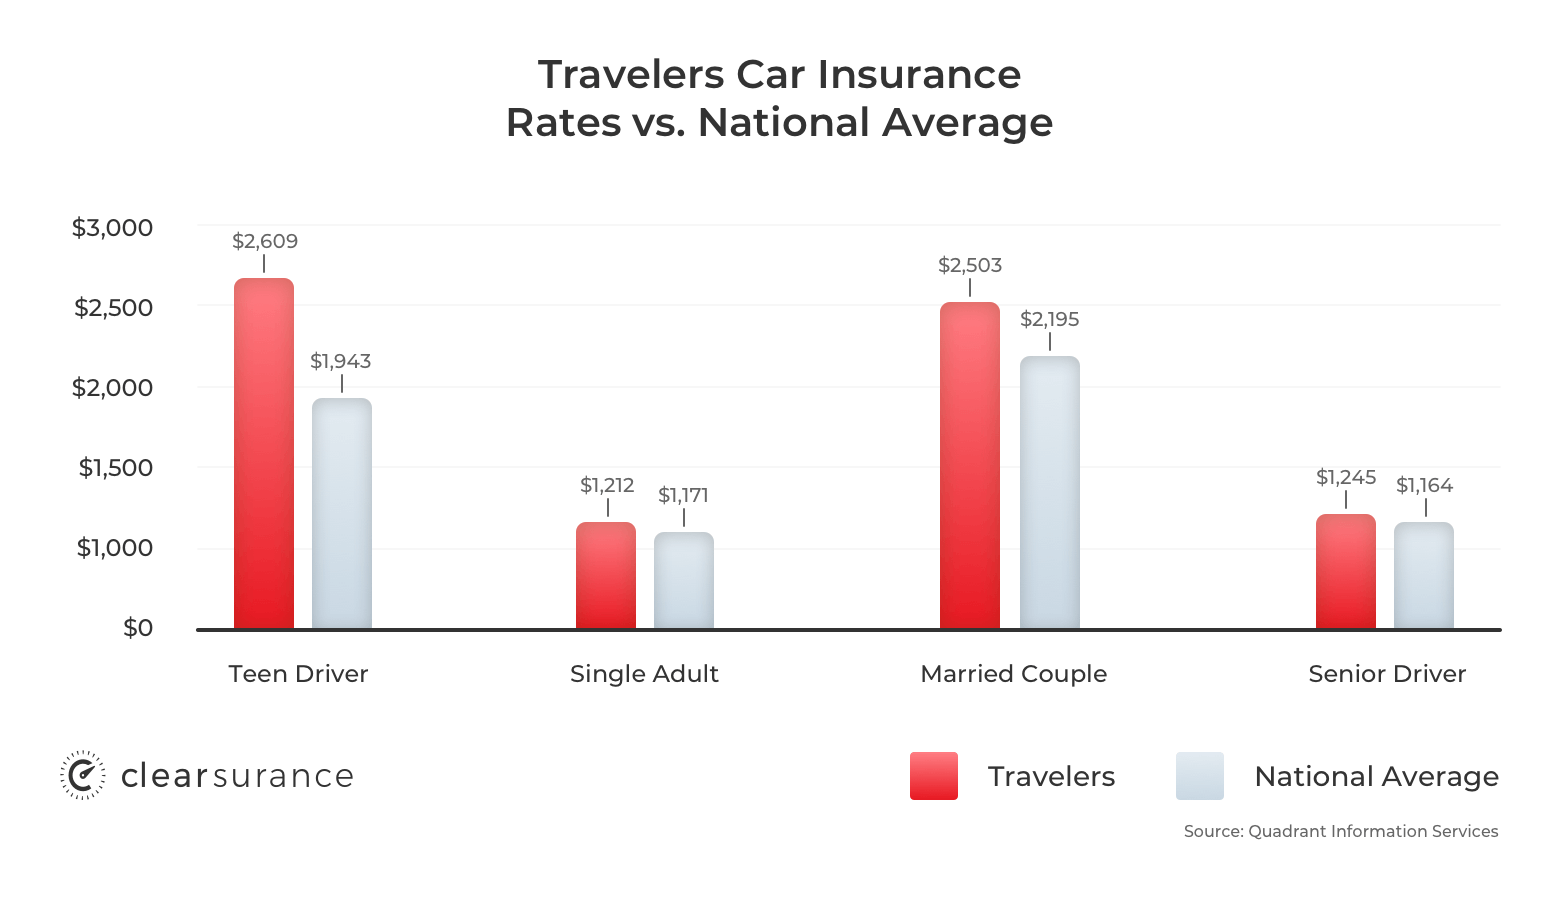 Travelers car insurance rates